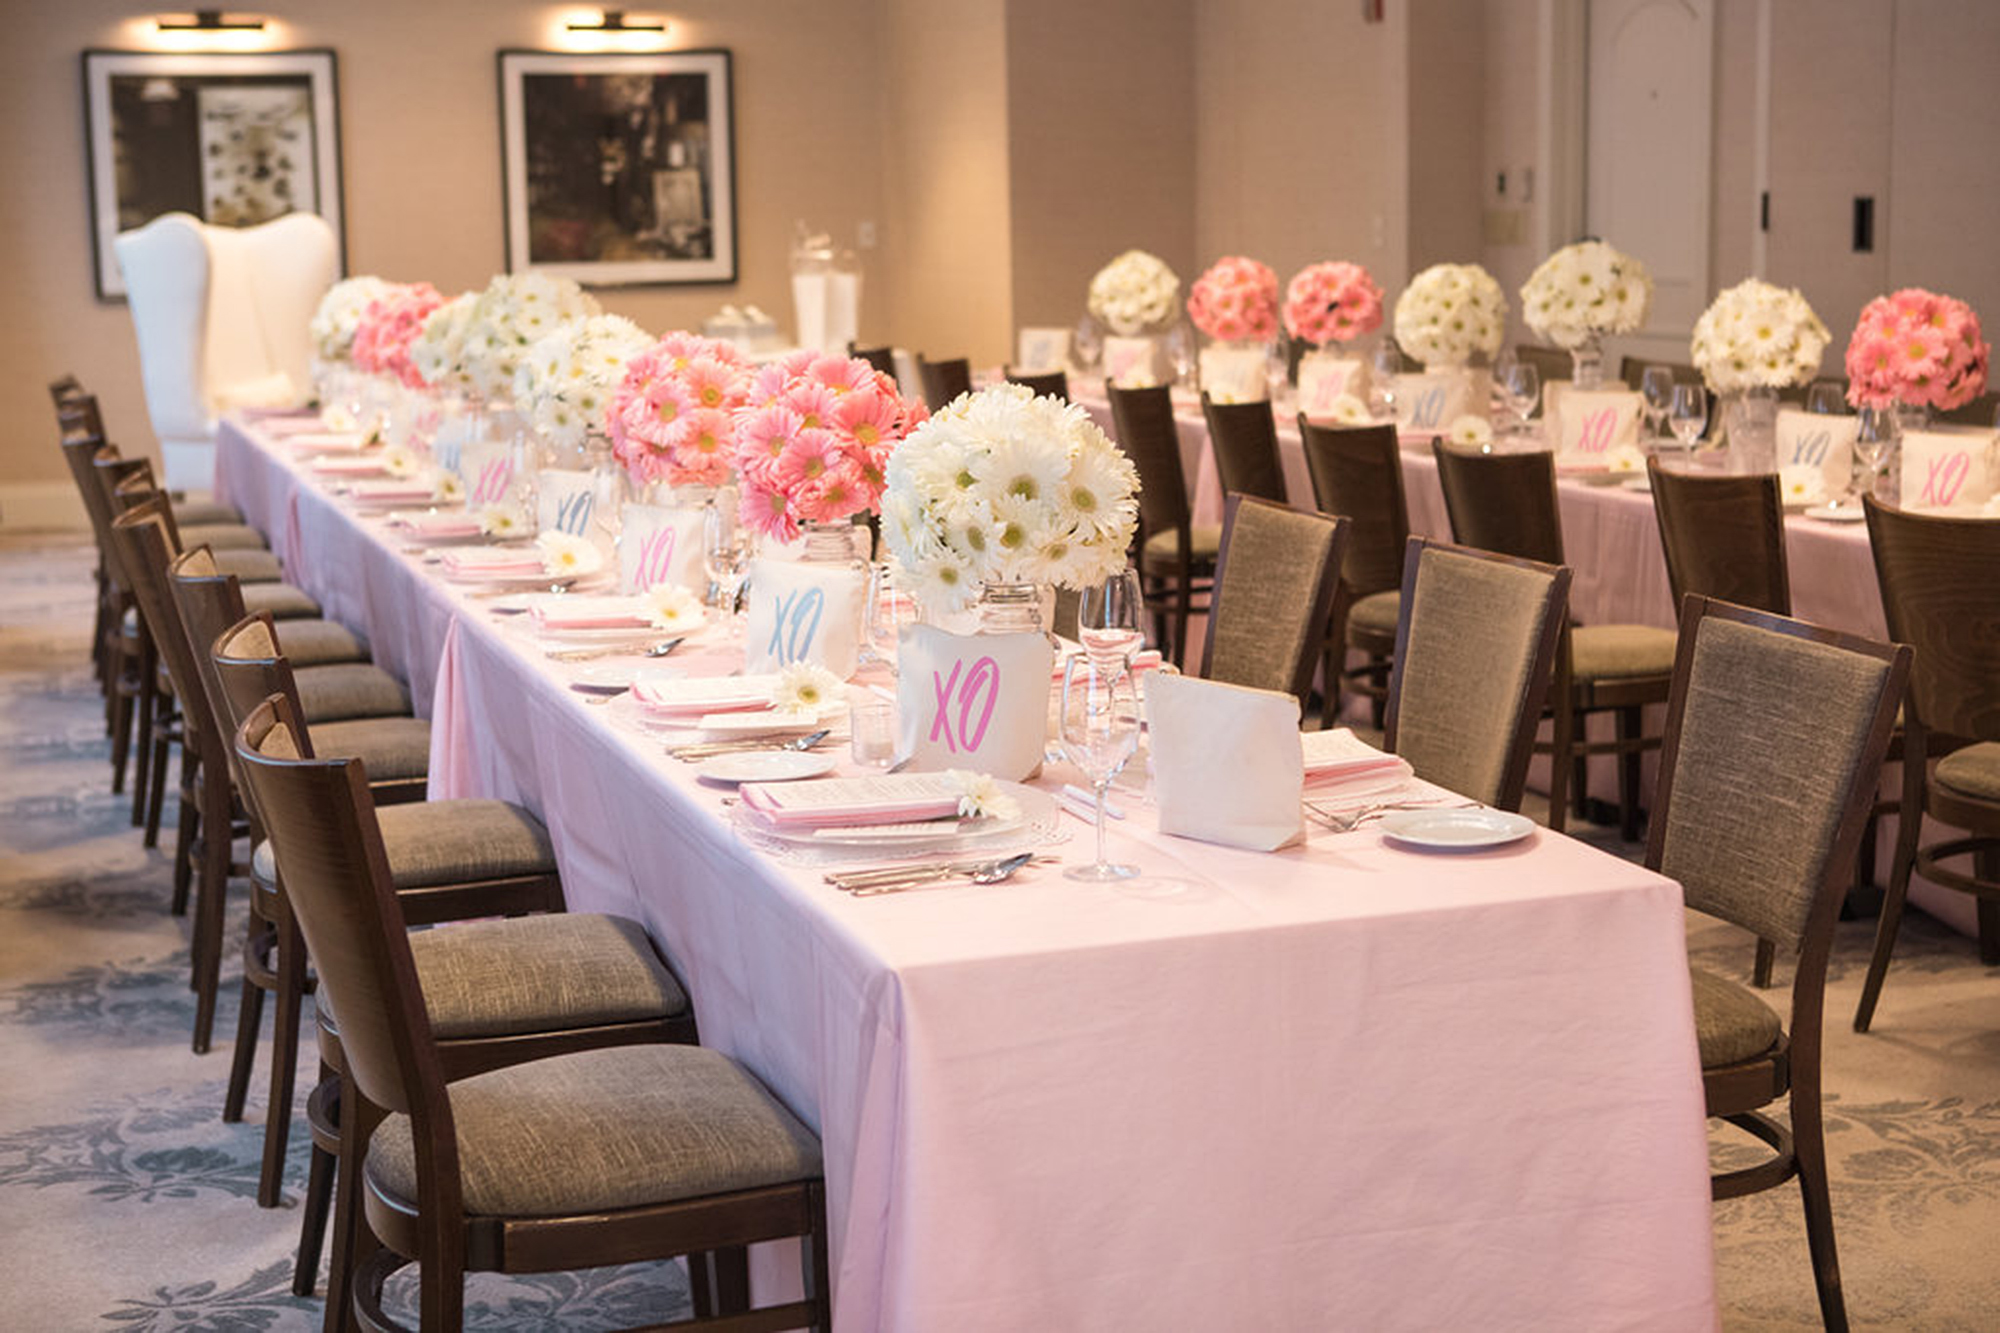 04_Private Bridal Shower NYC XO Room Table Decor_AE Events.jpg